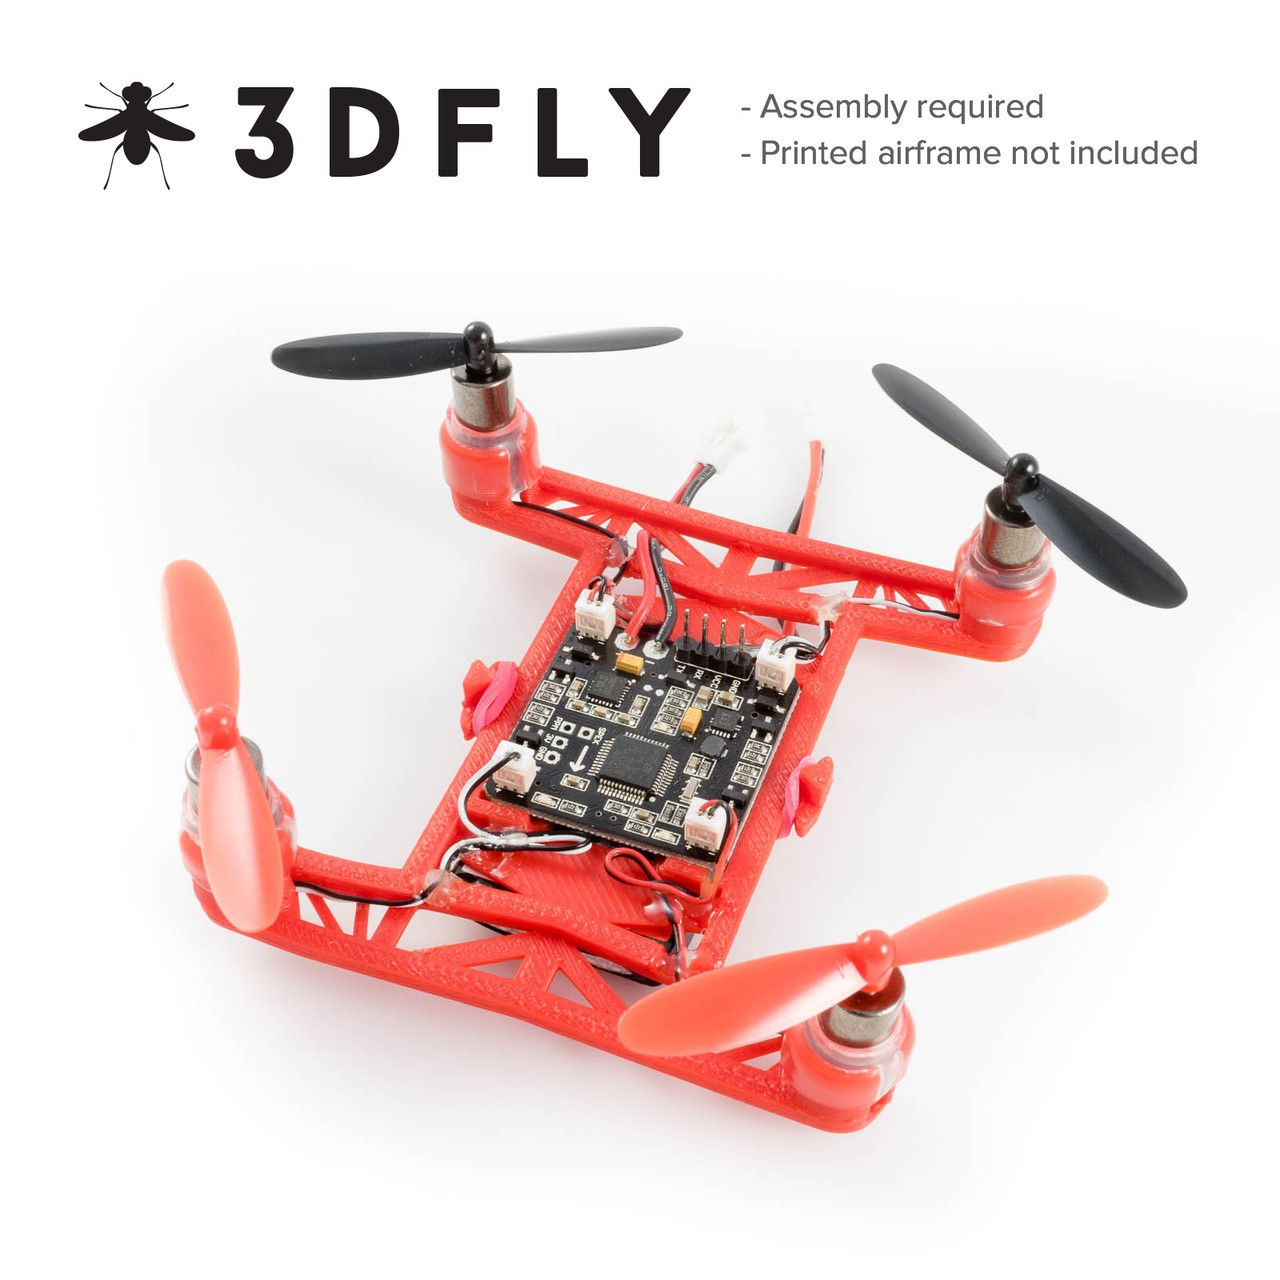 Hovership 3DFly Micro Quad Kit (FrSky)